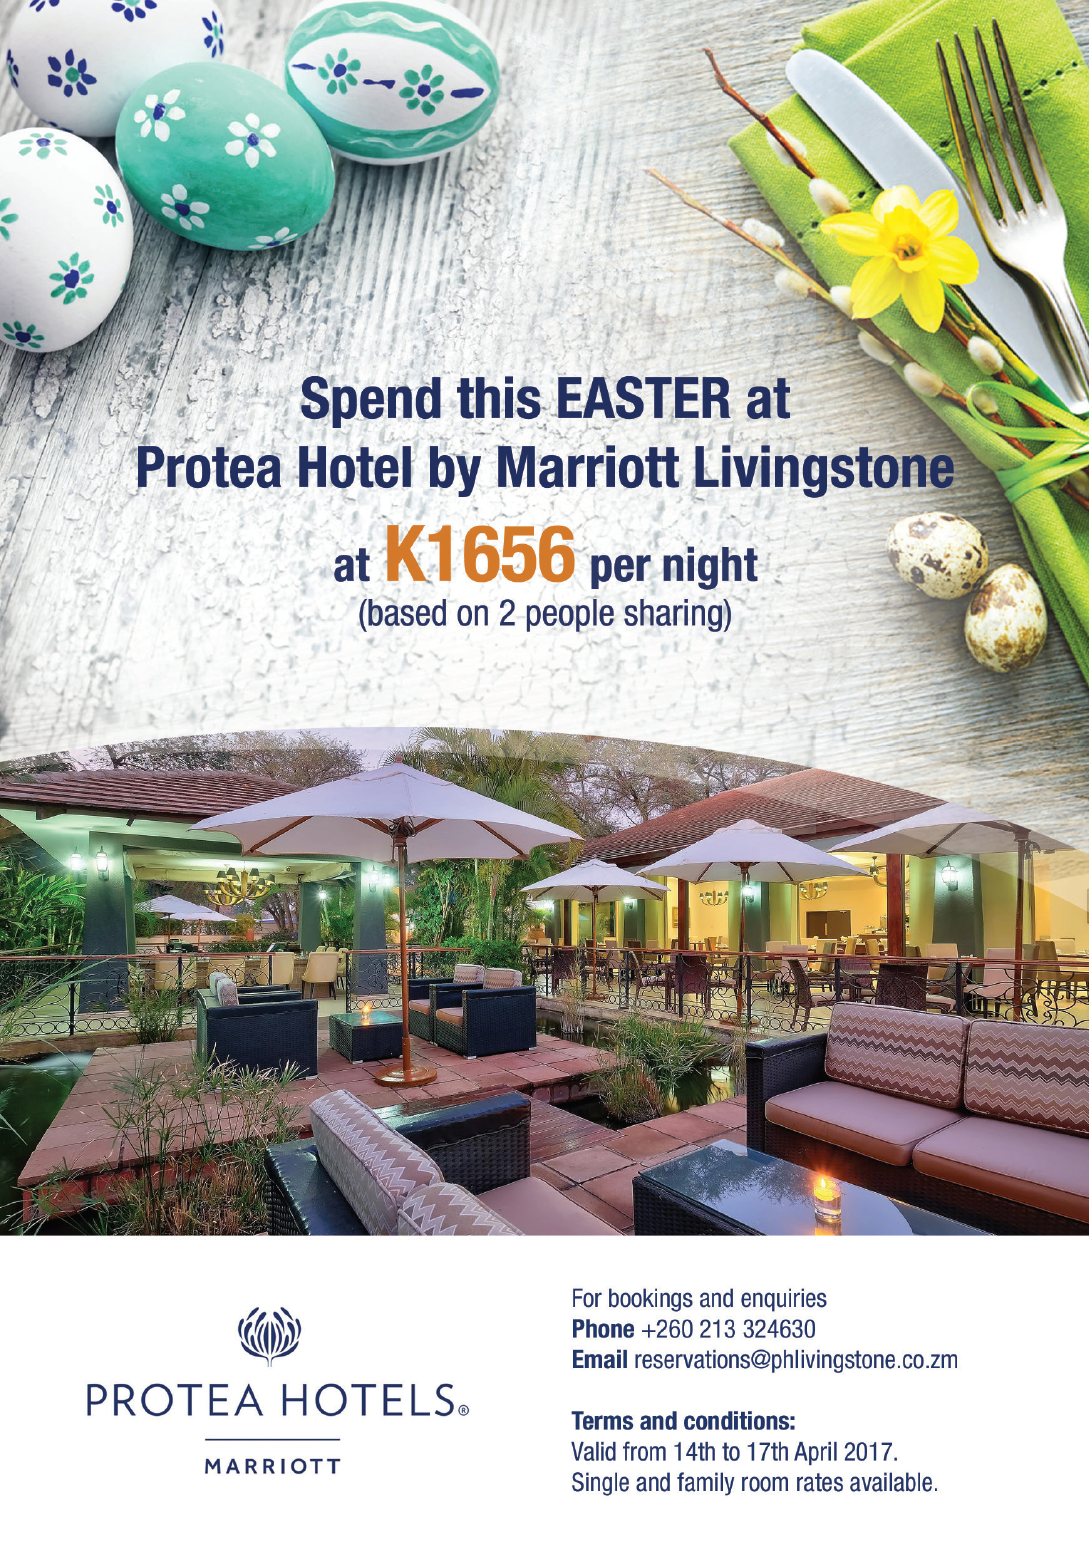 03 04 2017 Protea Hotel By Marriott Livingstone Easter